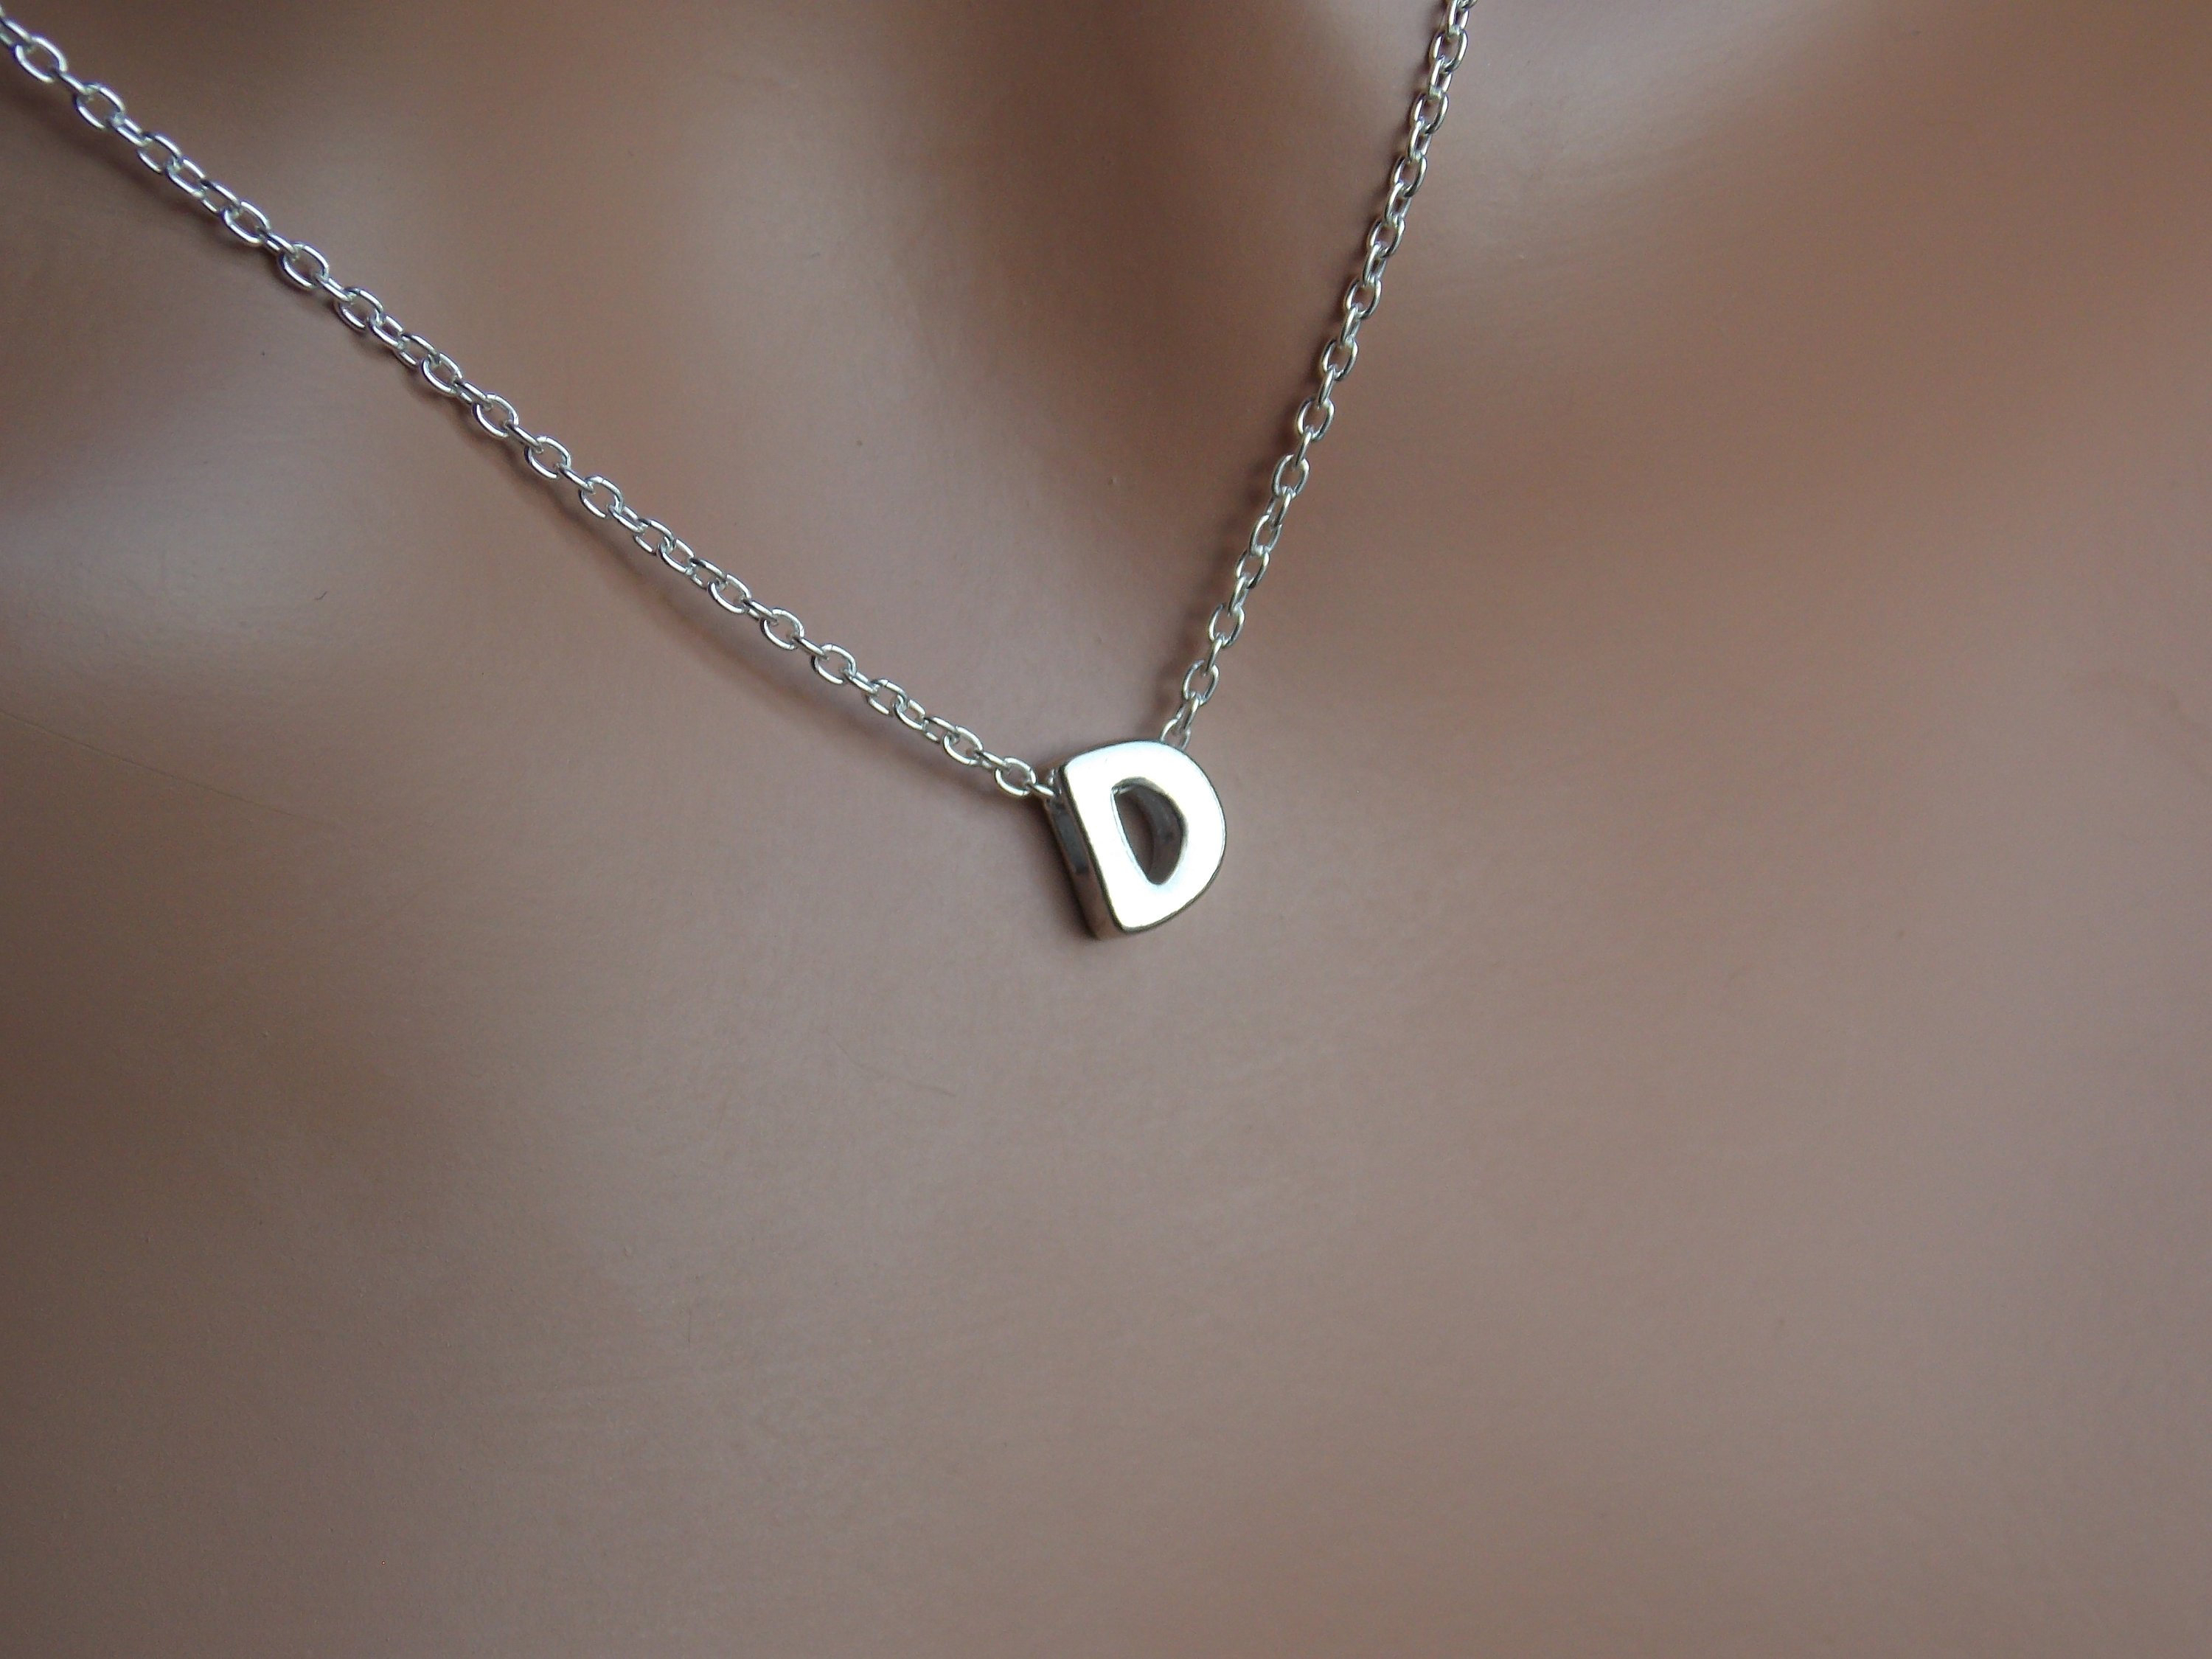 Initial D Necklace, Letter D, Letter D Necklace, Monogram D, Letter D  Pendant, D Charm, D Jewelry, Alphabet, Sterling Silver D, Stampsink For Recent Letter B Alphabet Locket Element Necklaces (View 12 of 25)